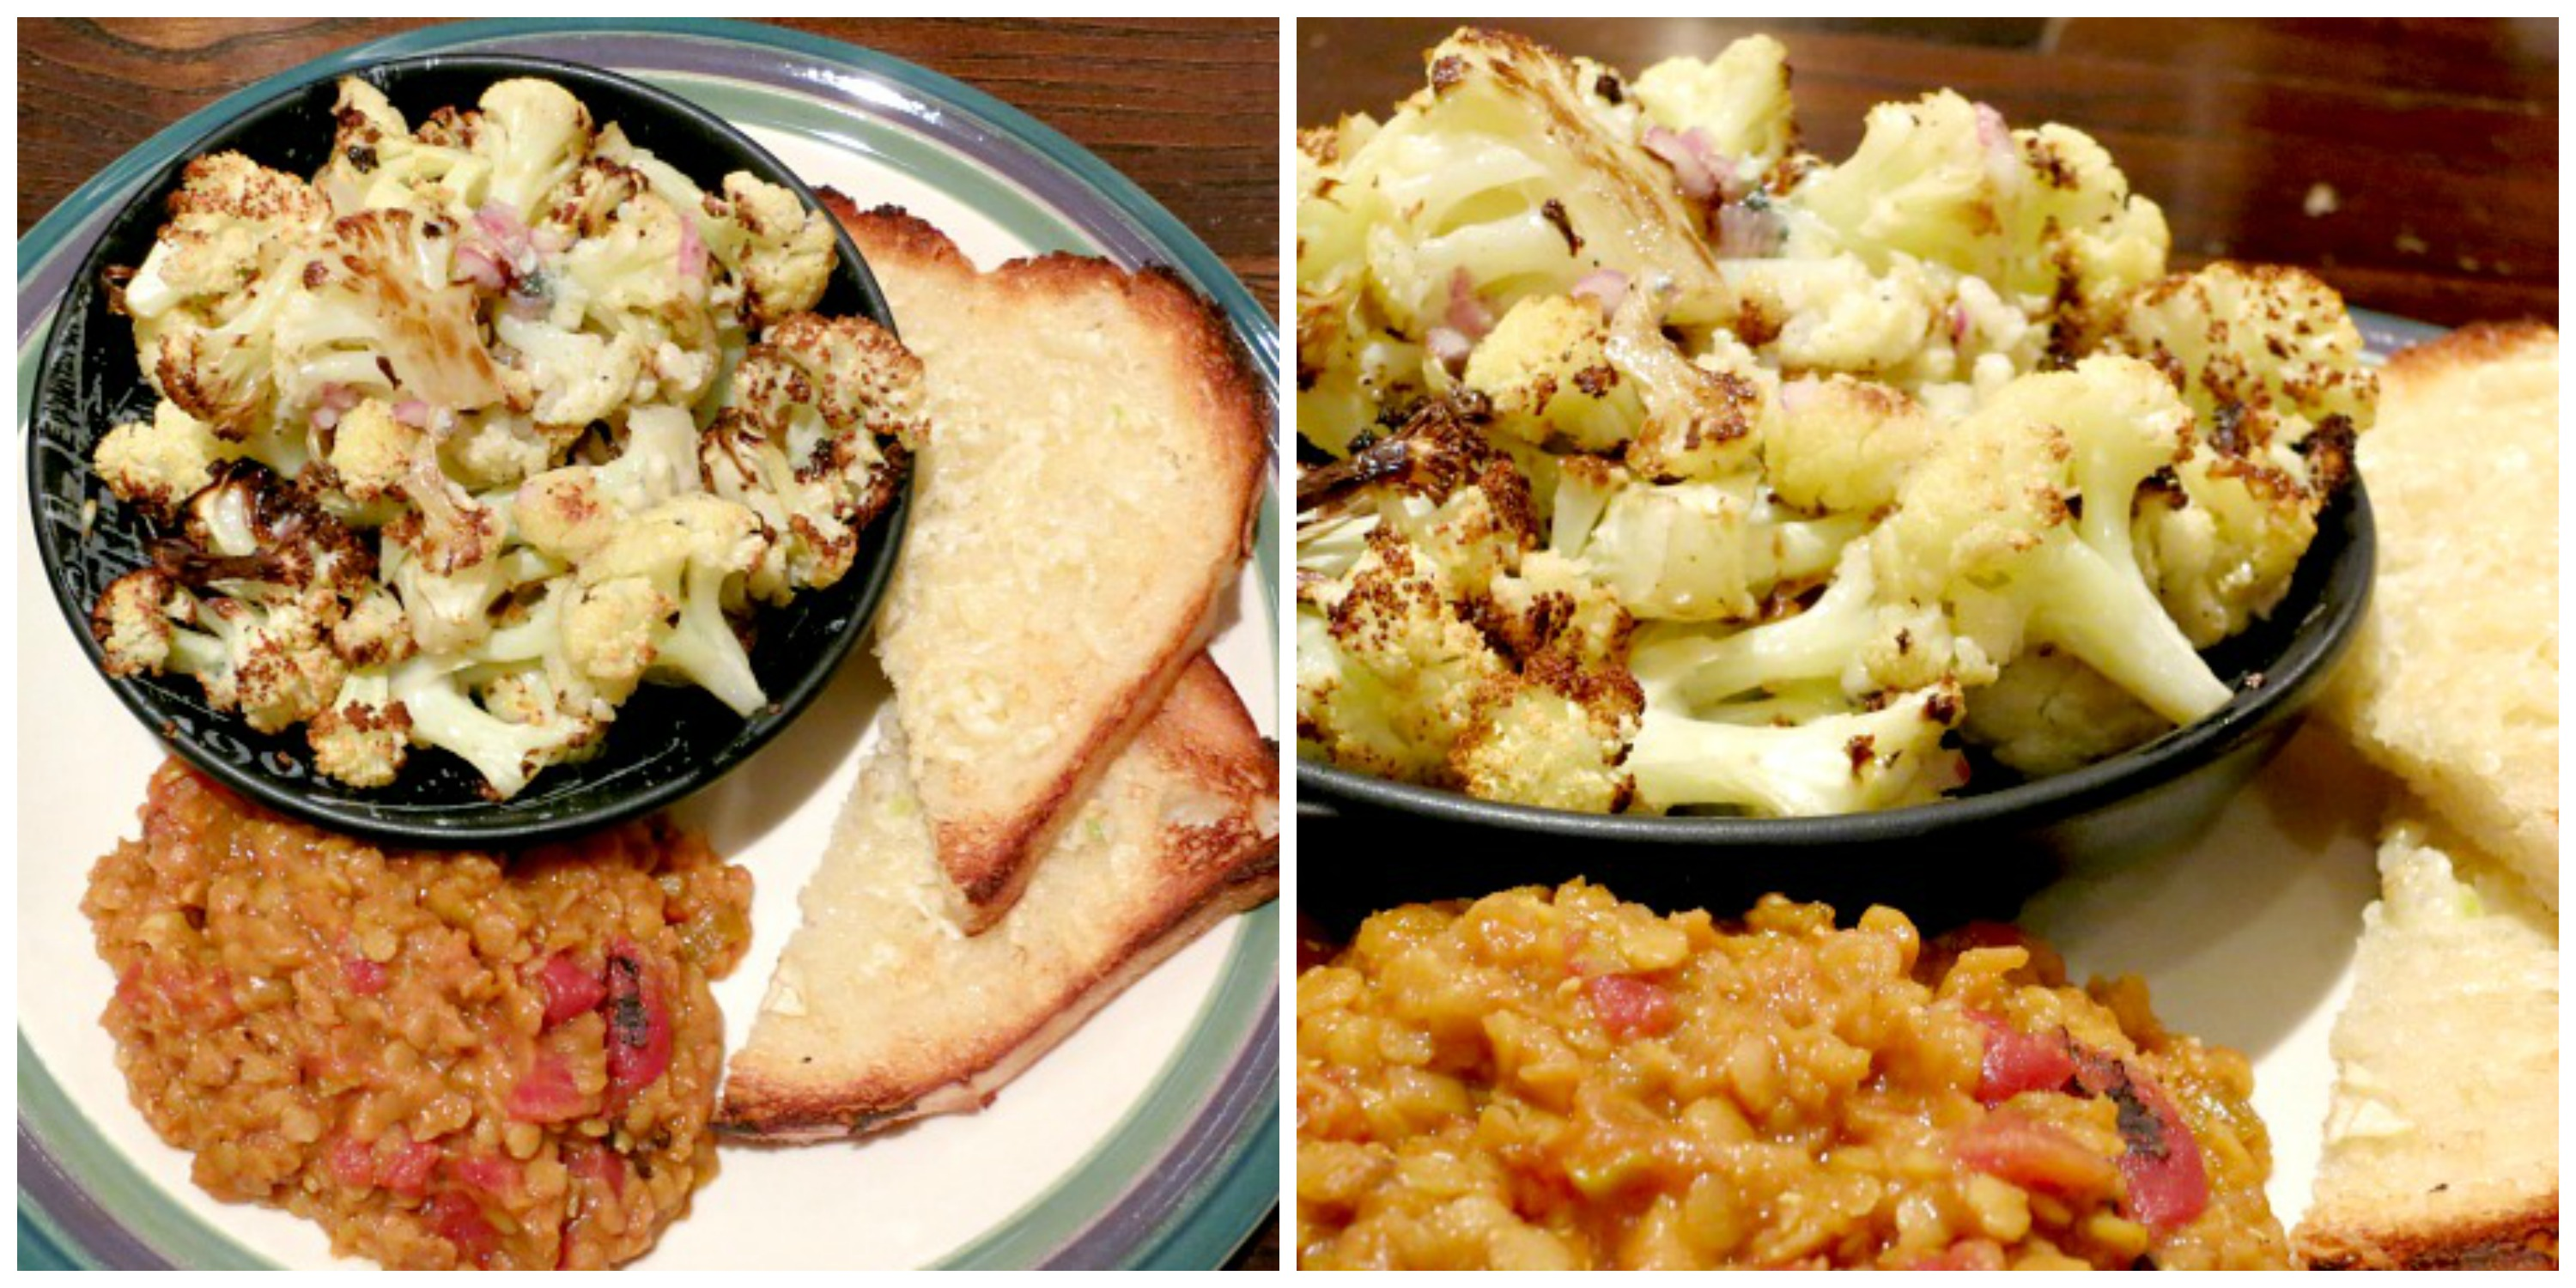 Cauliflower, Lentil Stew and Garlic Bread Collage